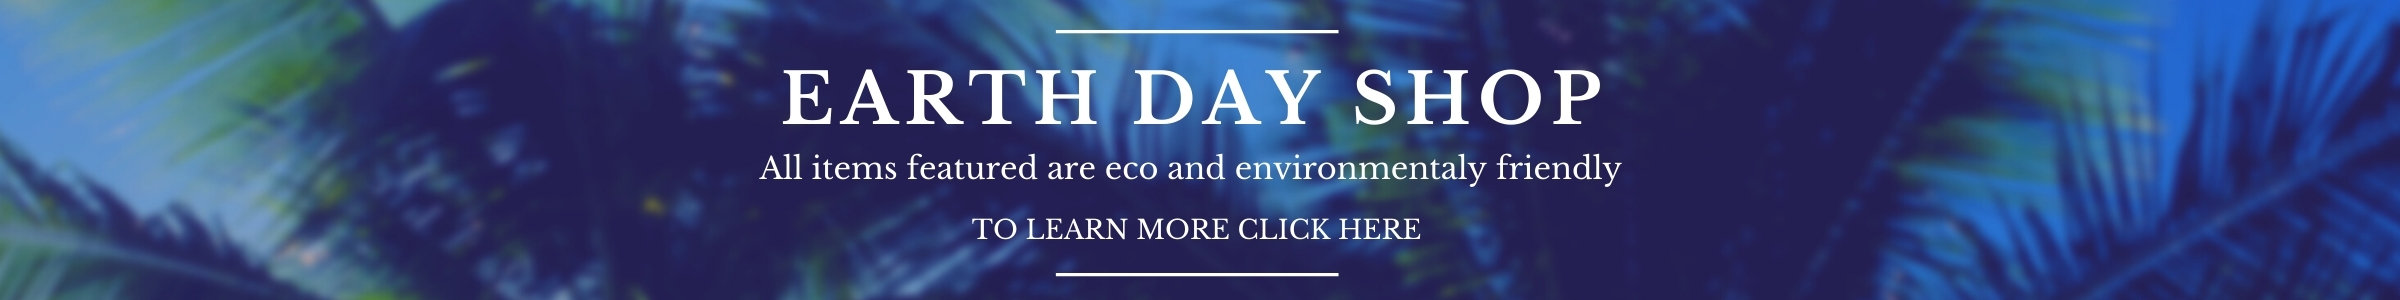 Earth Day Shop